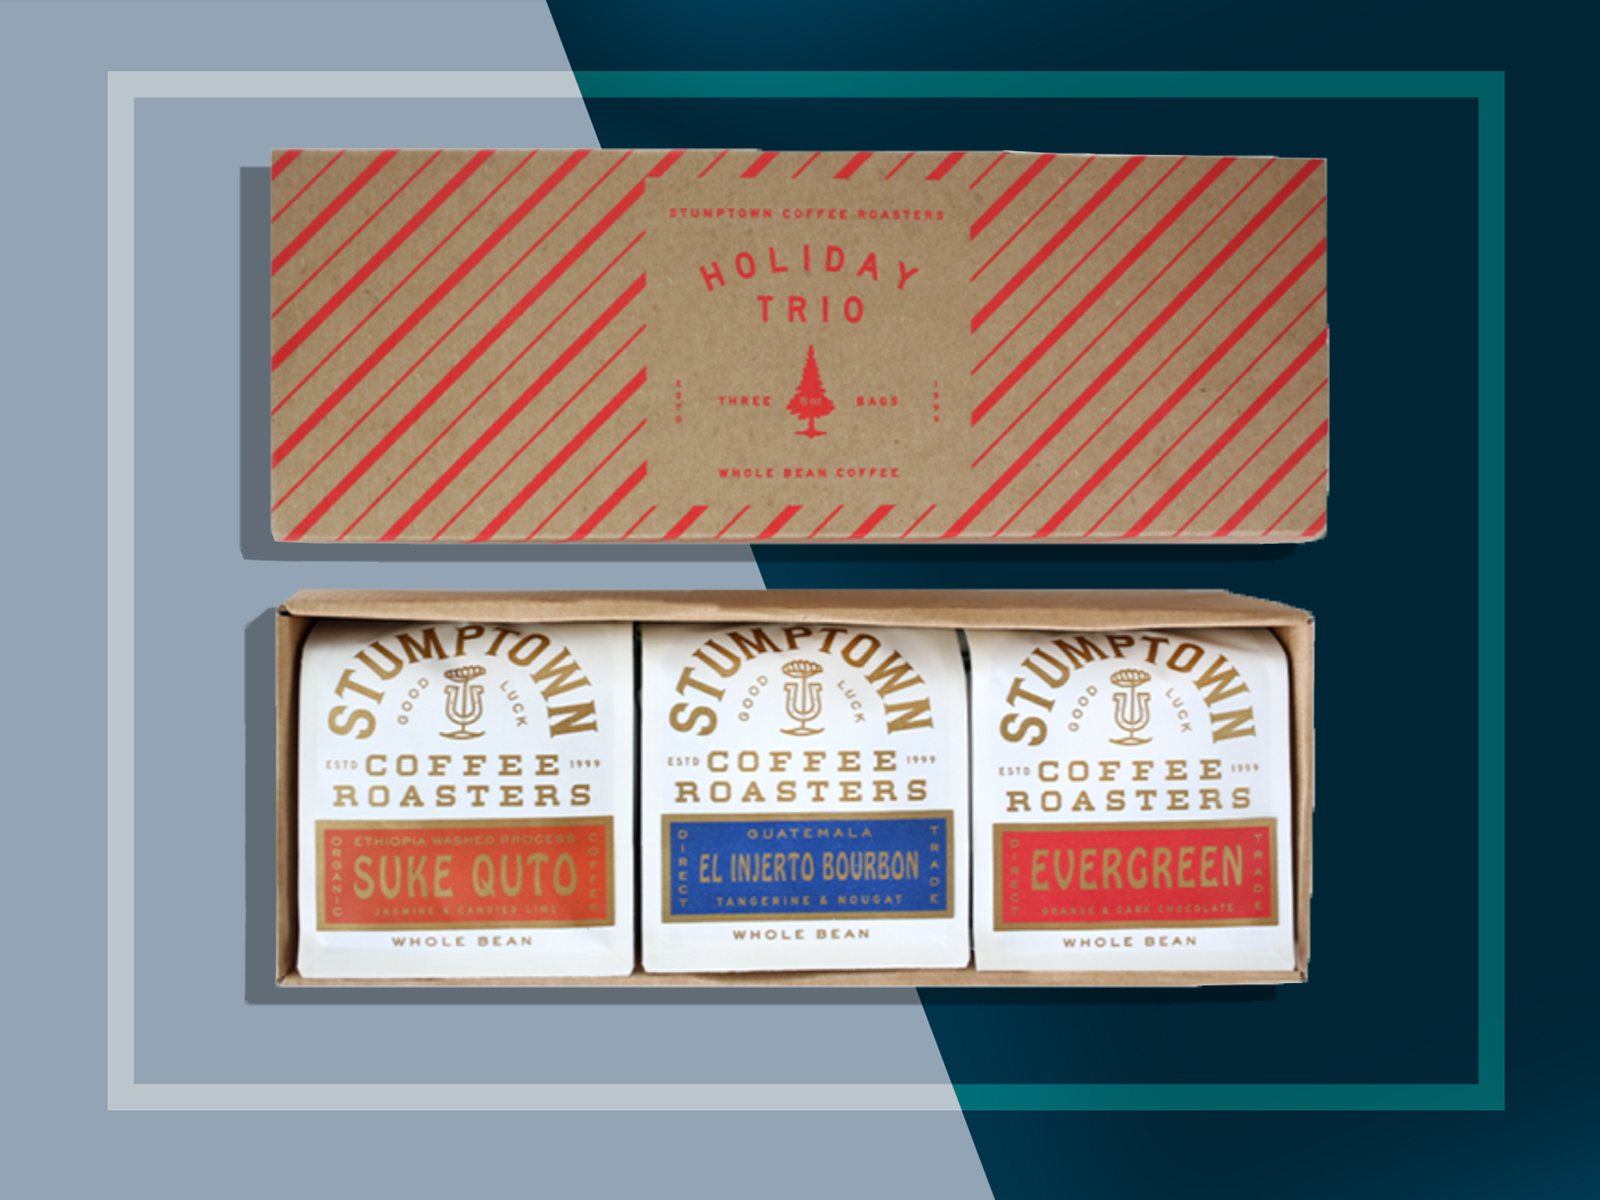 Coffee Gifts Stumptown Holiday Trio